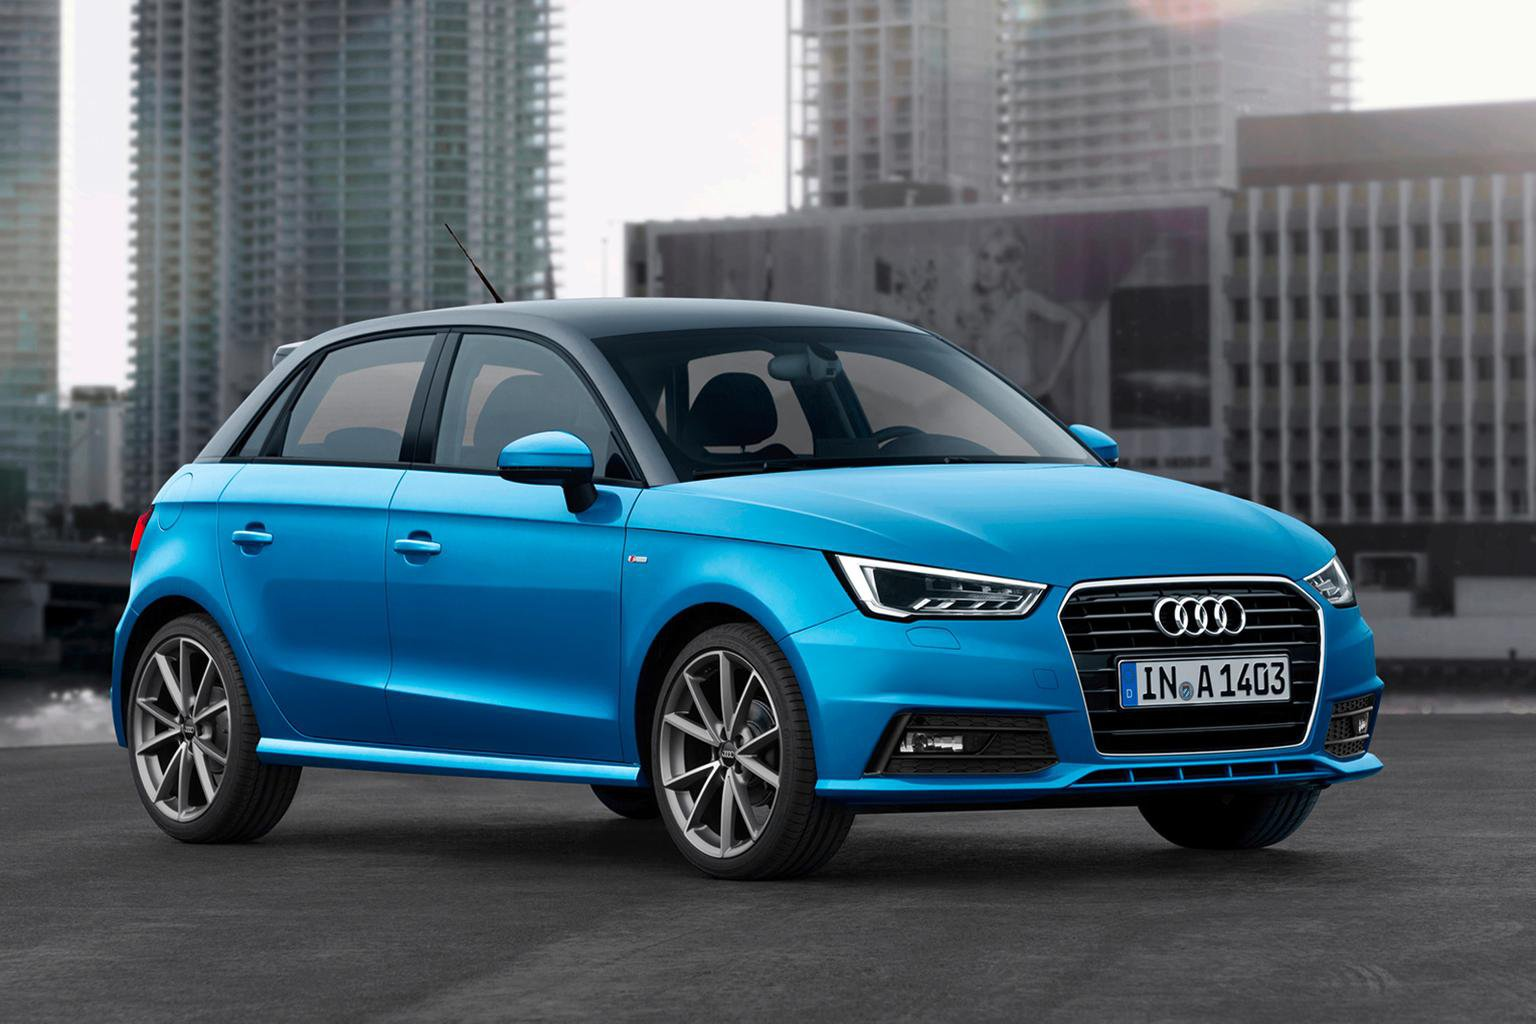 2015 Audi A1 face-lift revealed